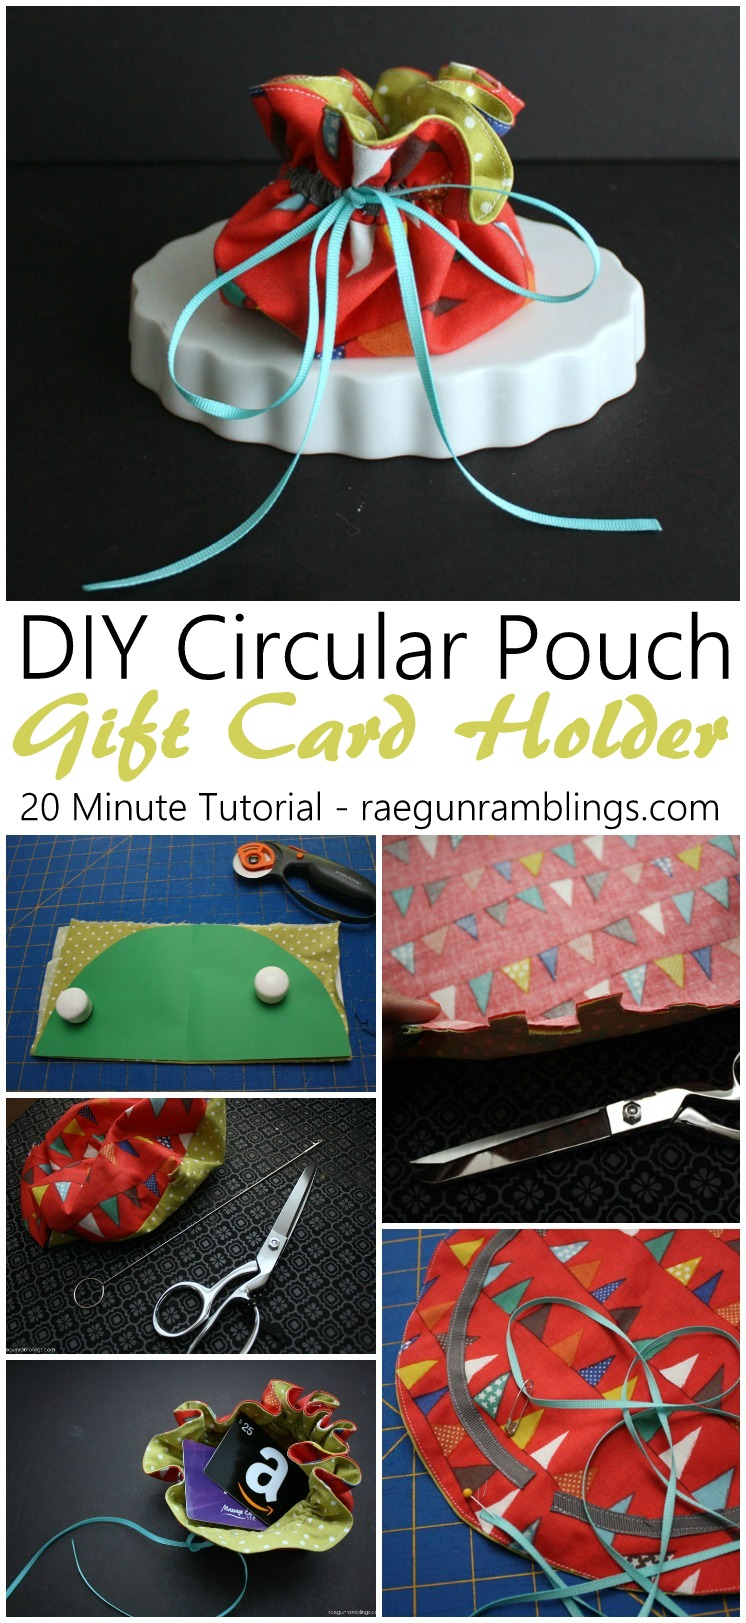 How to make a circular pouch in just 20 minutes. great easy sewing diy project perfect for gift card holders for CHristmas